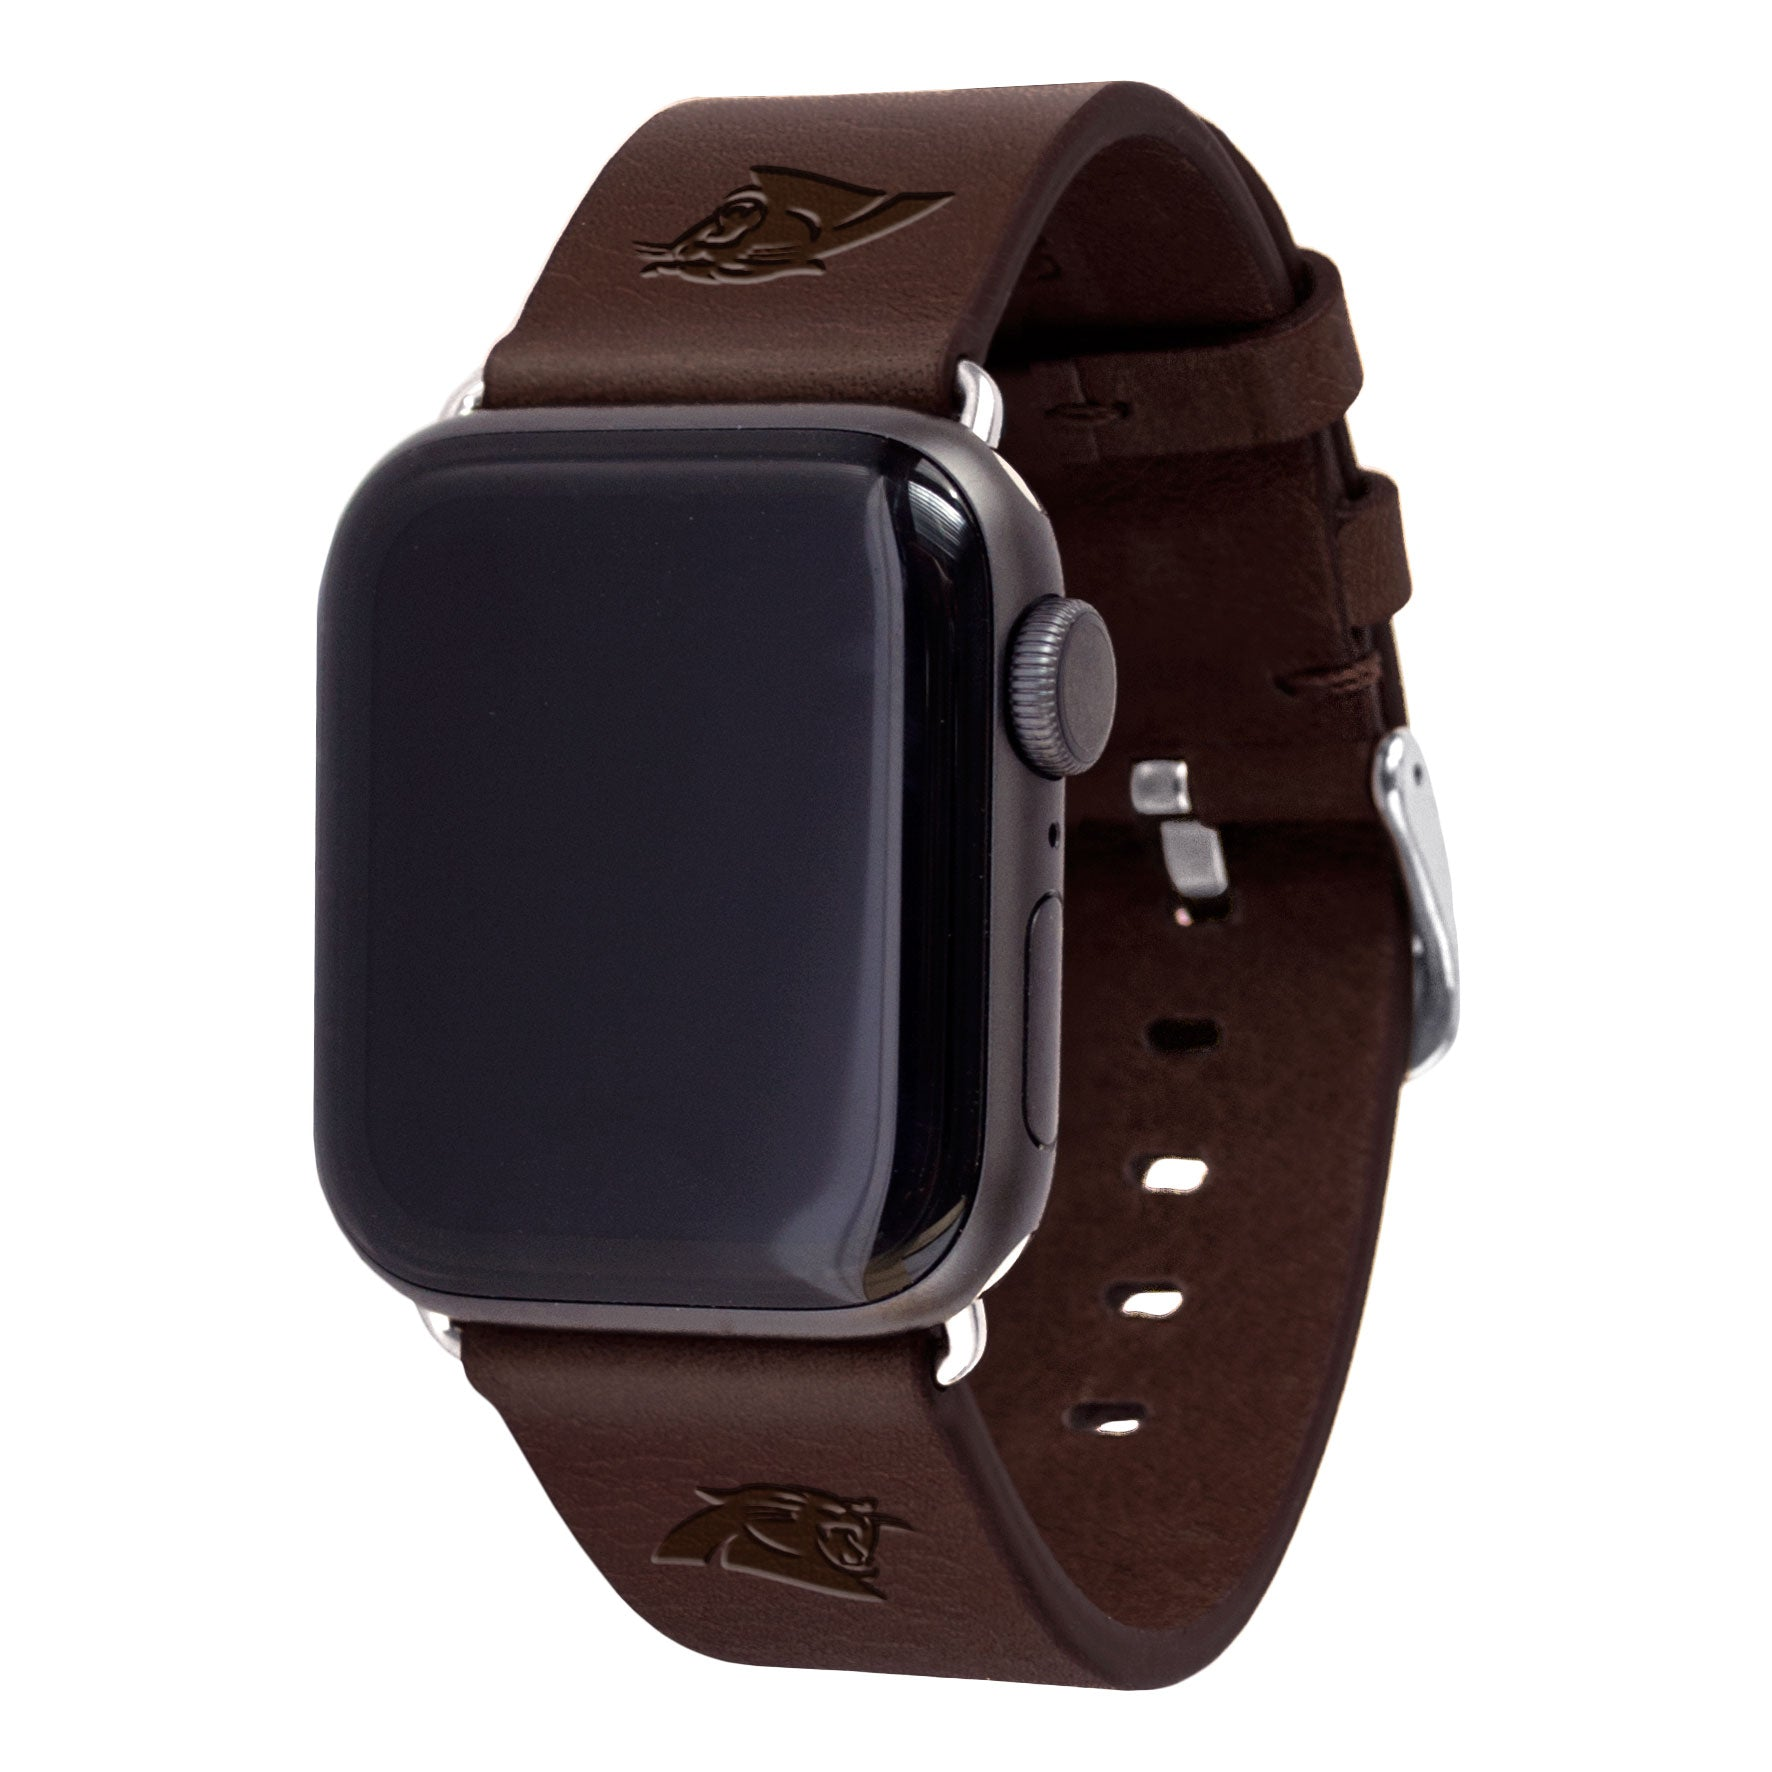 new products 31c26 379ae Carolina Panthers Leather Apple Watch Band